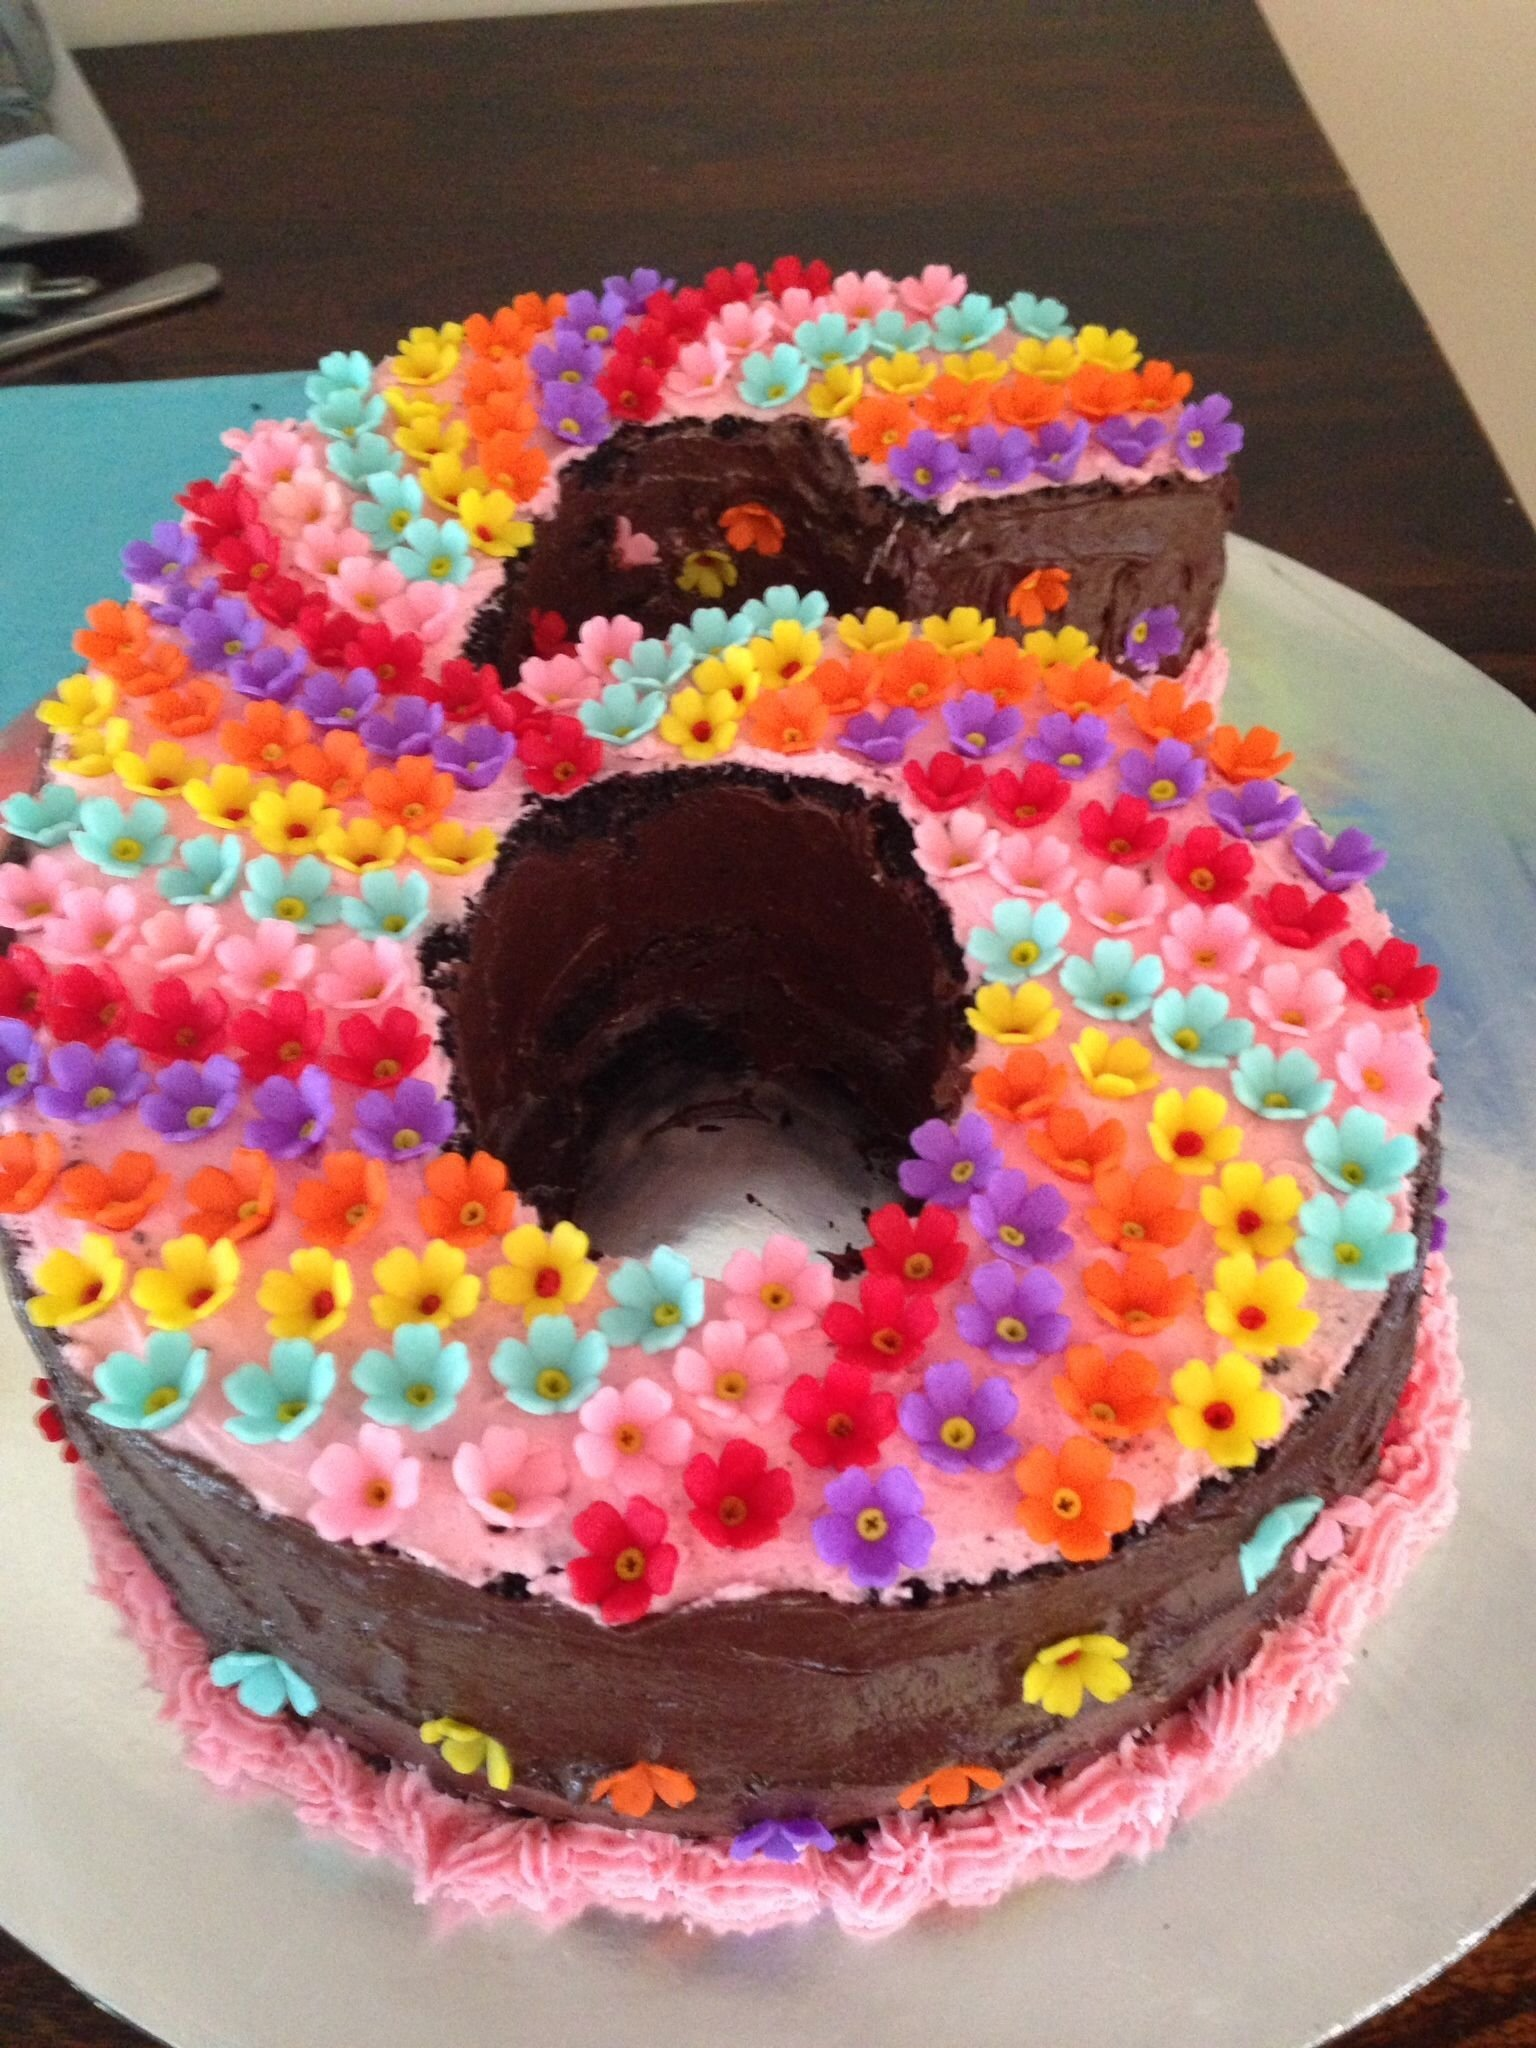 10 Stunning 6 Yr Old Birthday Party Ideas cute cake for 6 year old dont have one anymorehave to use this 7